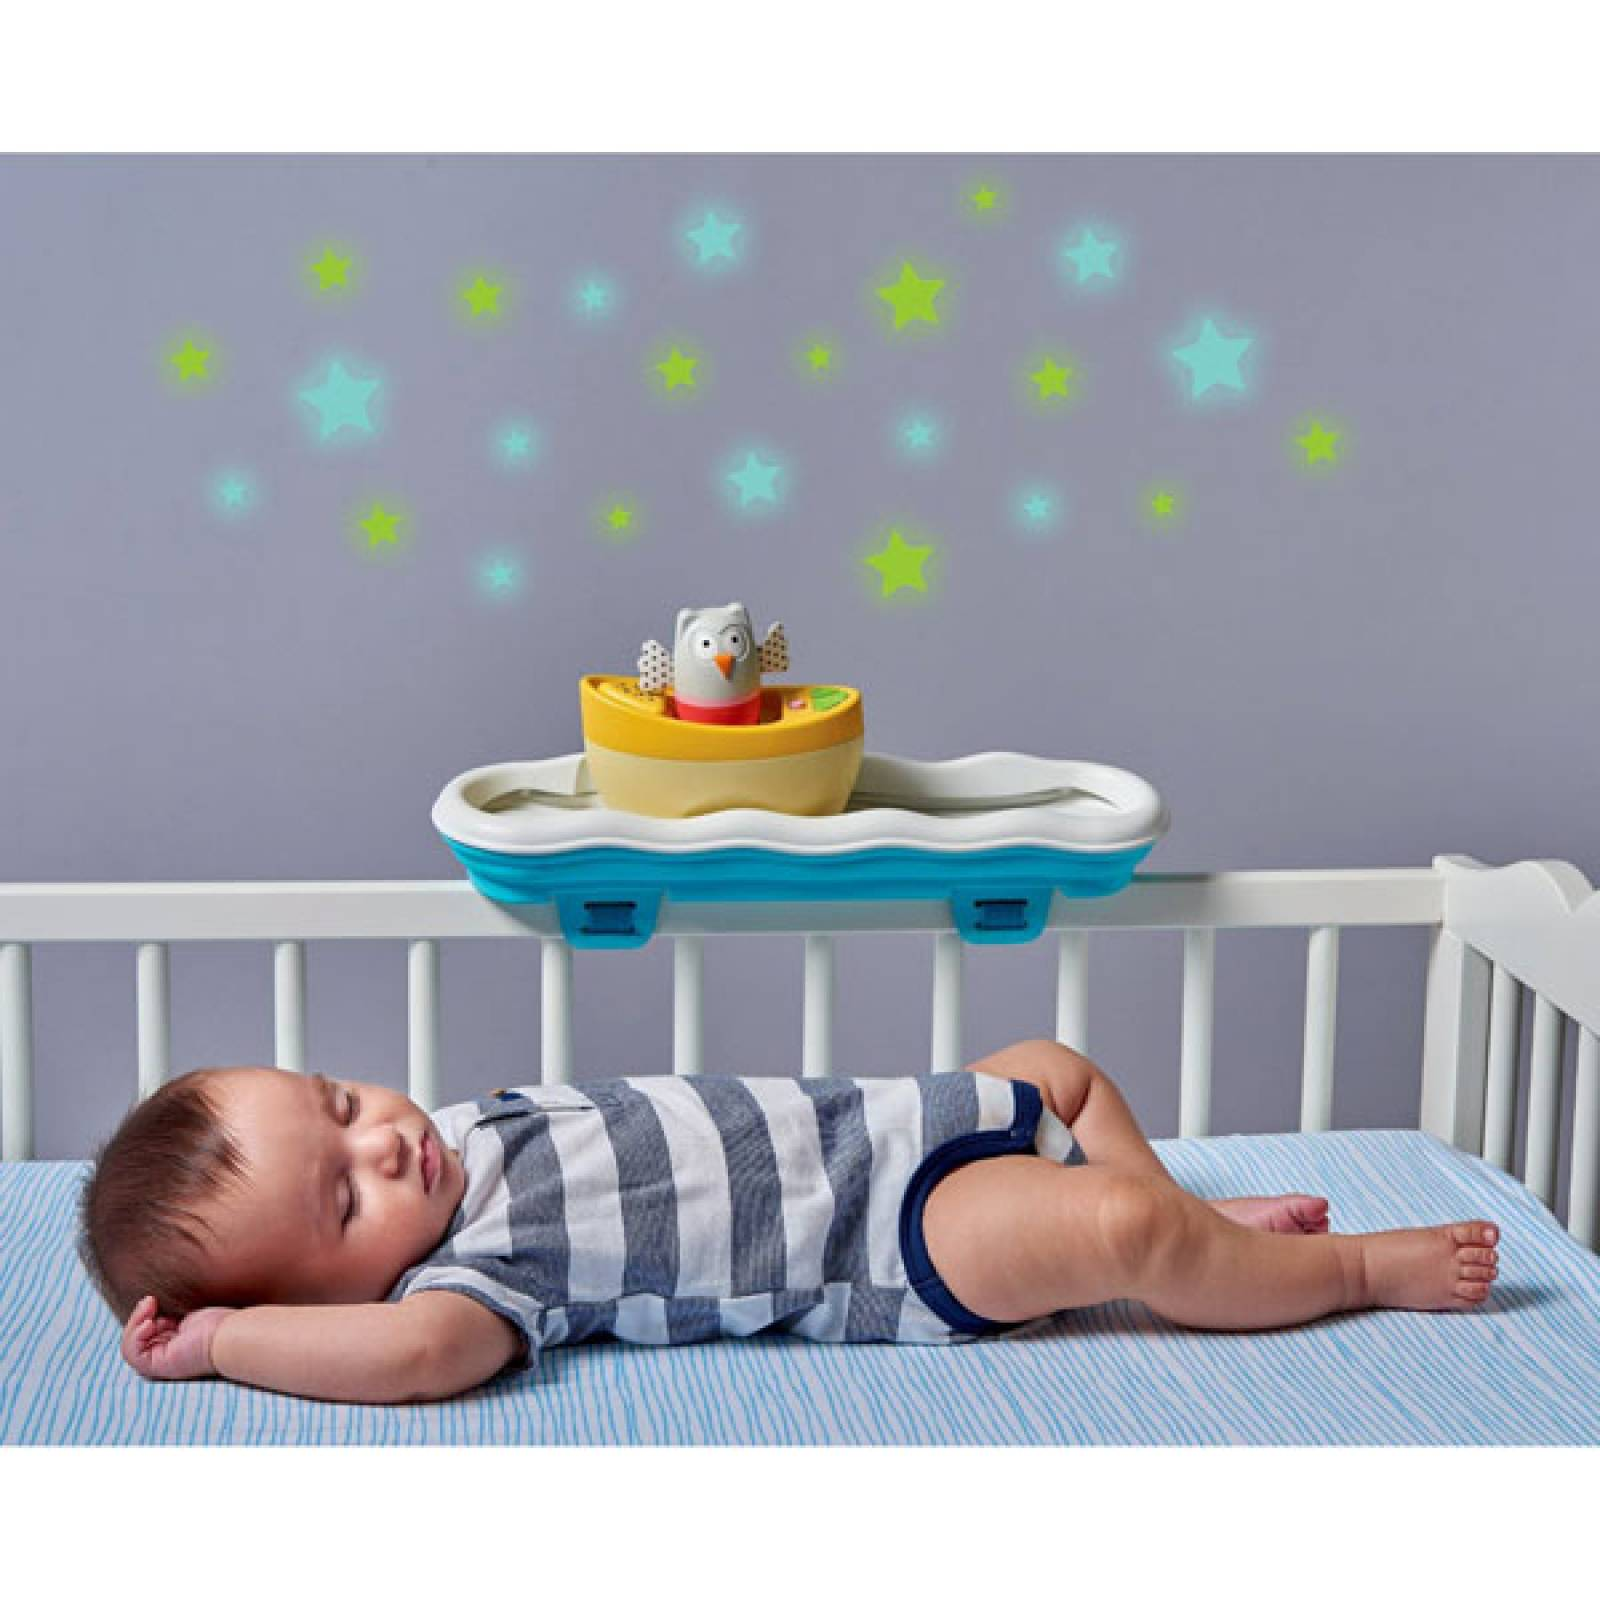 Musical Boat Cot Toy By Taf Toys 0+ thumbnails